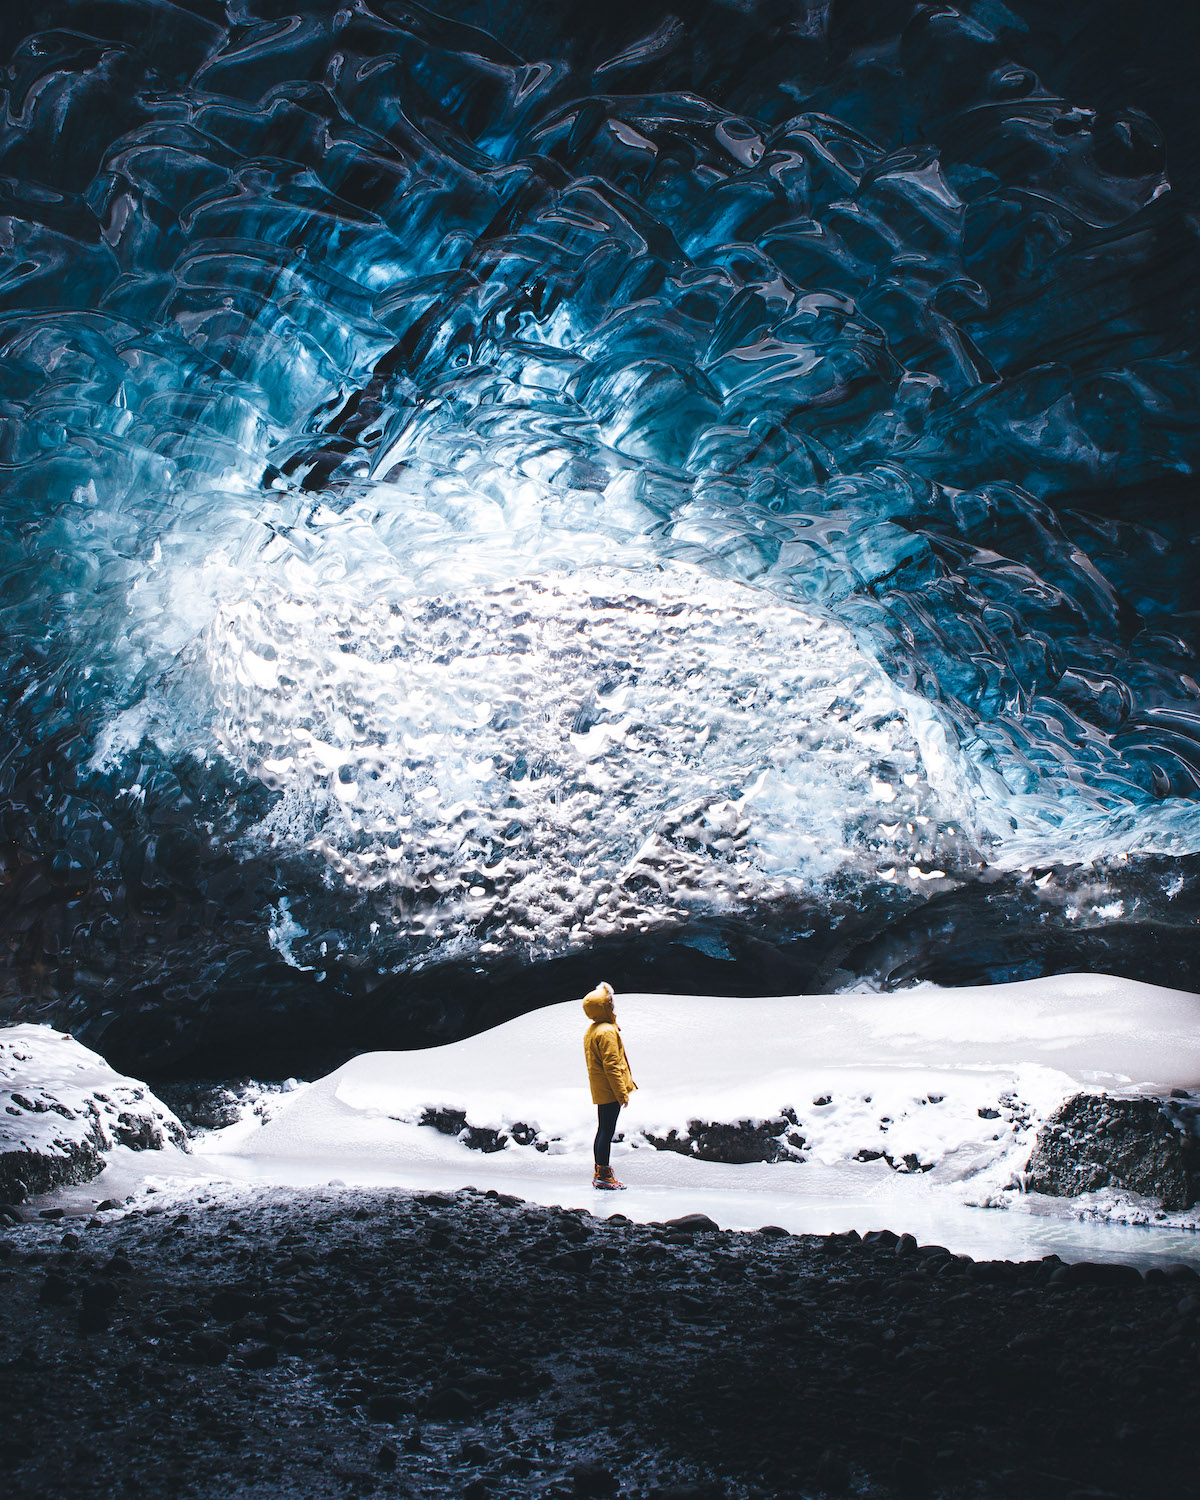 Iceland Ice Caves by Sarah Bethea